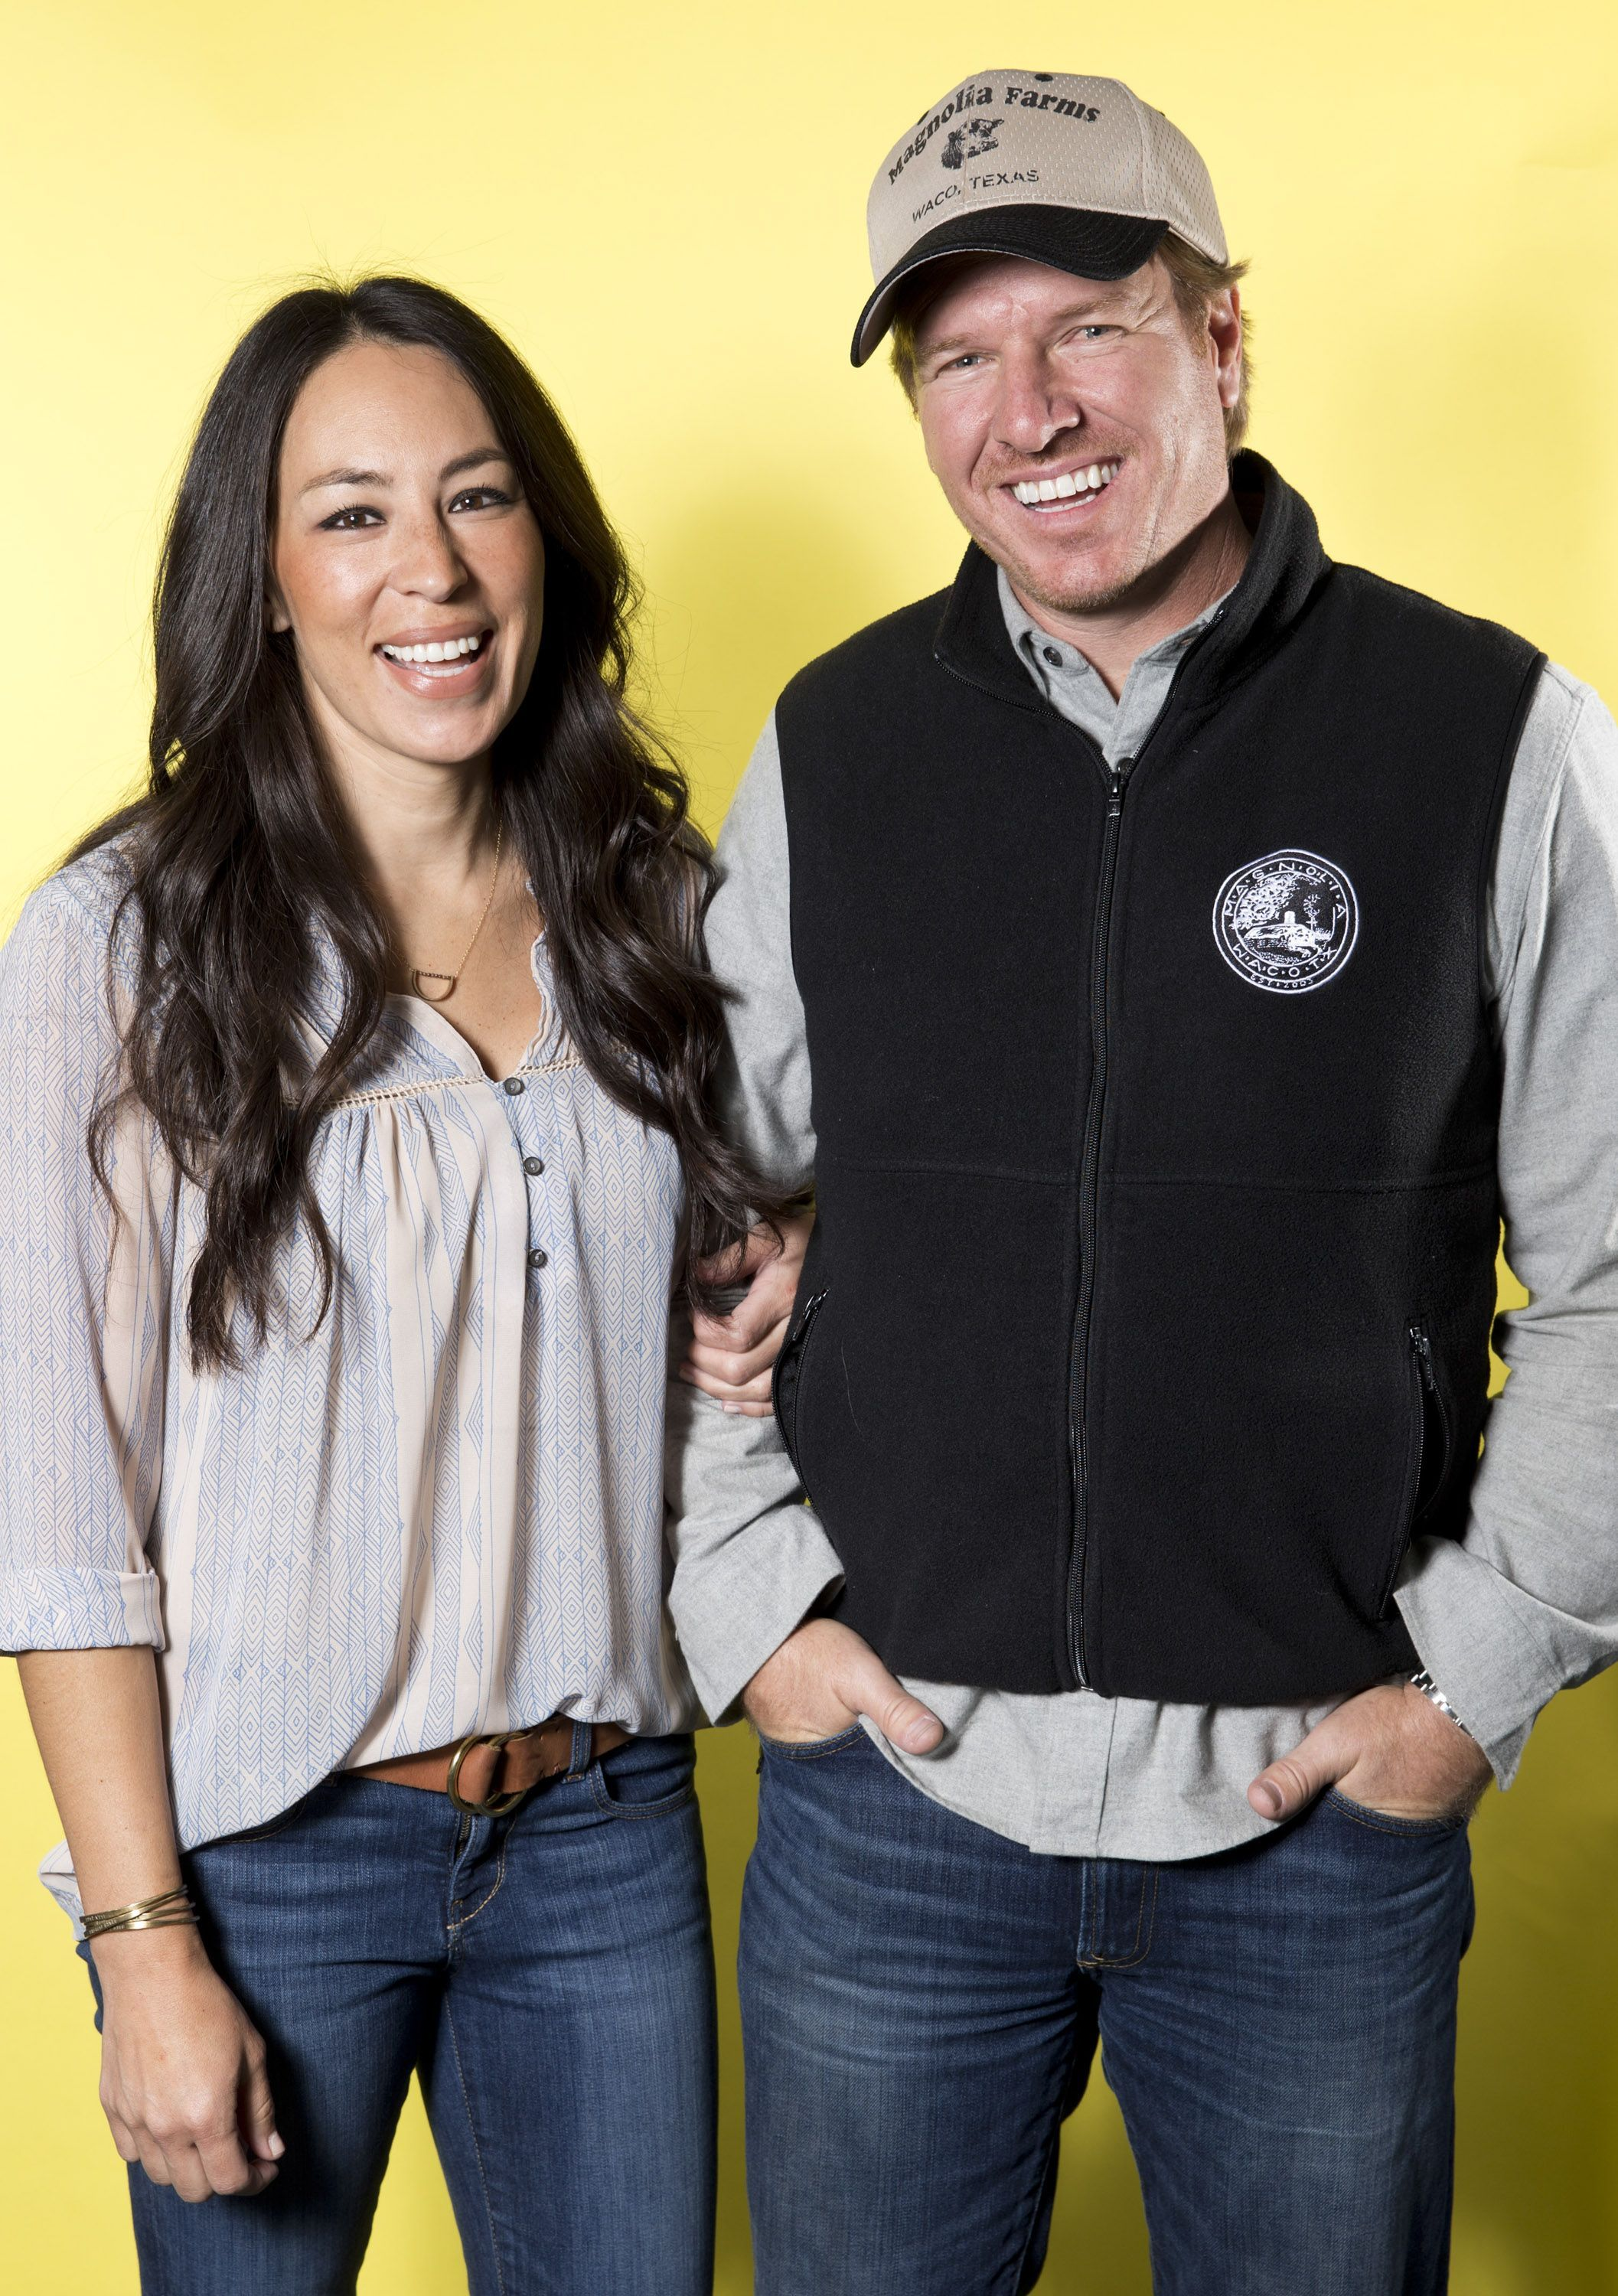 """NEW YORK (AP) — With all the joking and hamming for the camera that Chip Gaines does on """"Fixer Upper,"""" it's hard to believe that he initially was the shy half of the husband-and-wife duo that's garnered huge fans and ratings for HGTV."""